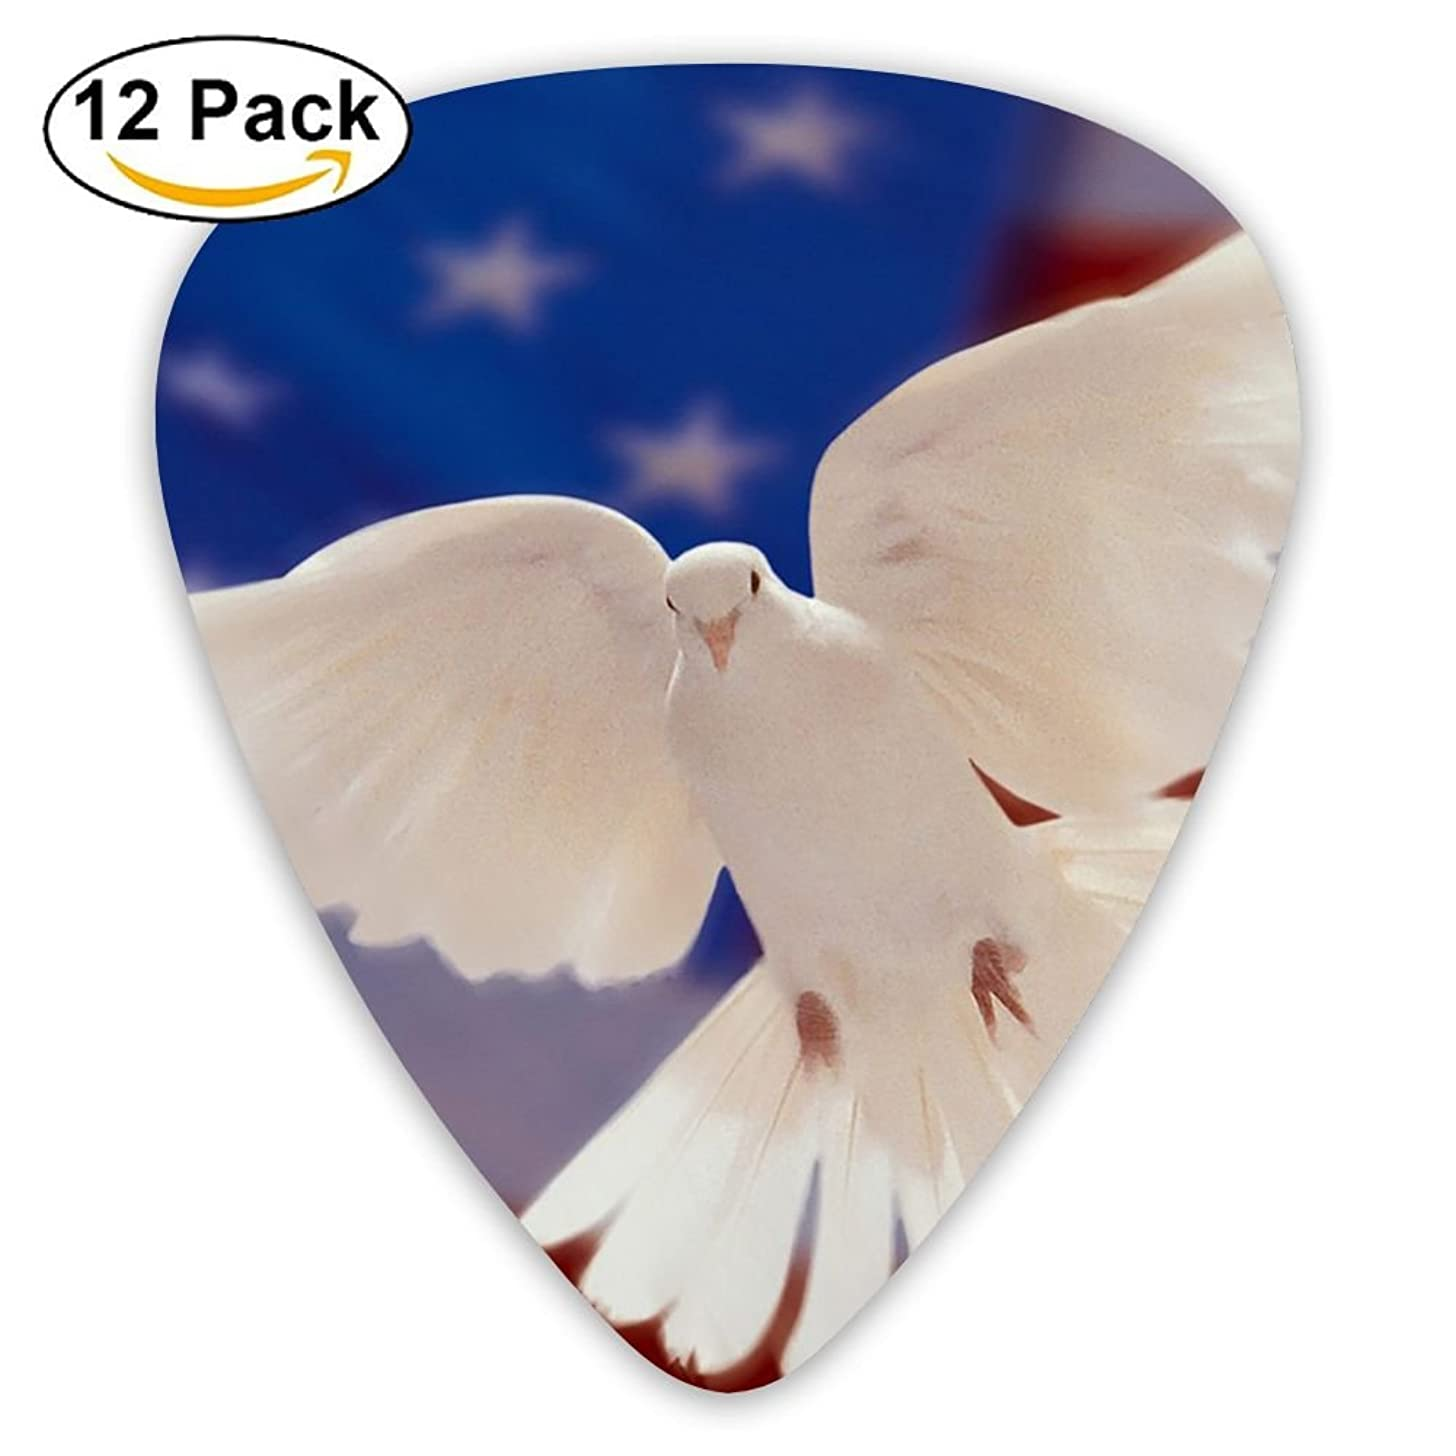 12-pack Fashion Classic Electric Guitar Picks Plectrums American Flag And White Dove Of Peace Instrument Standard Bass Guitarist